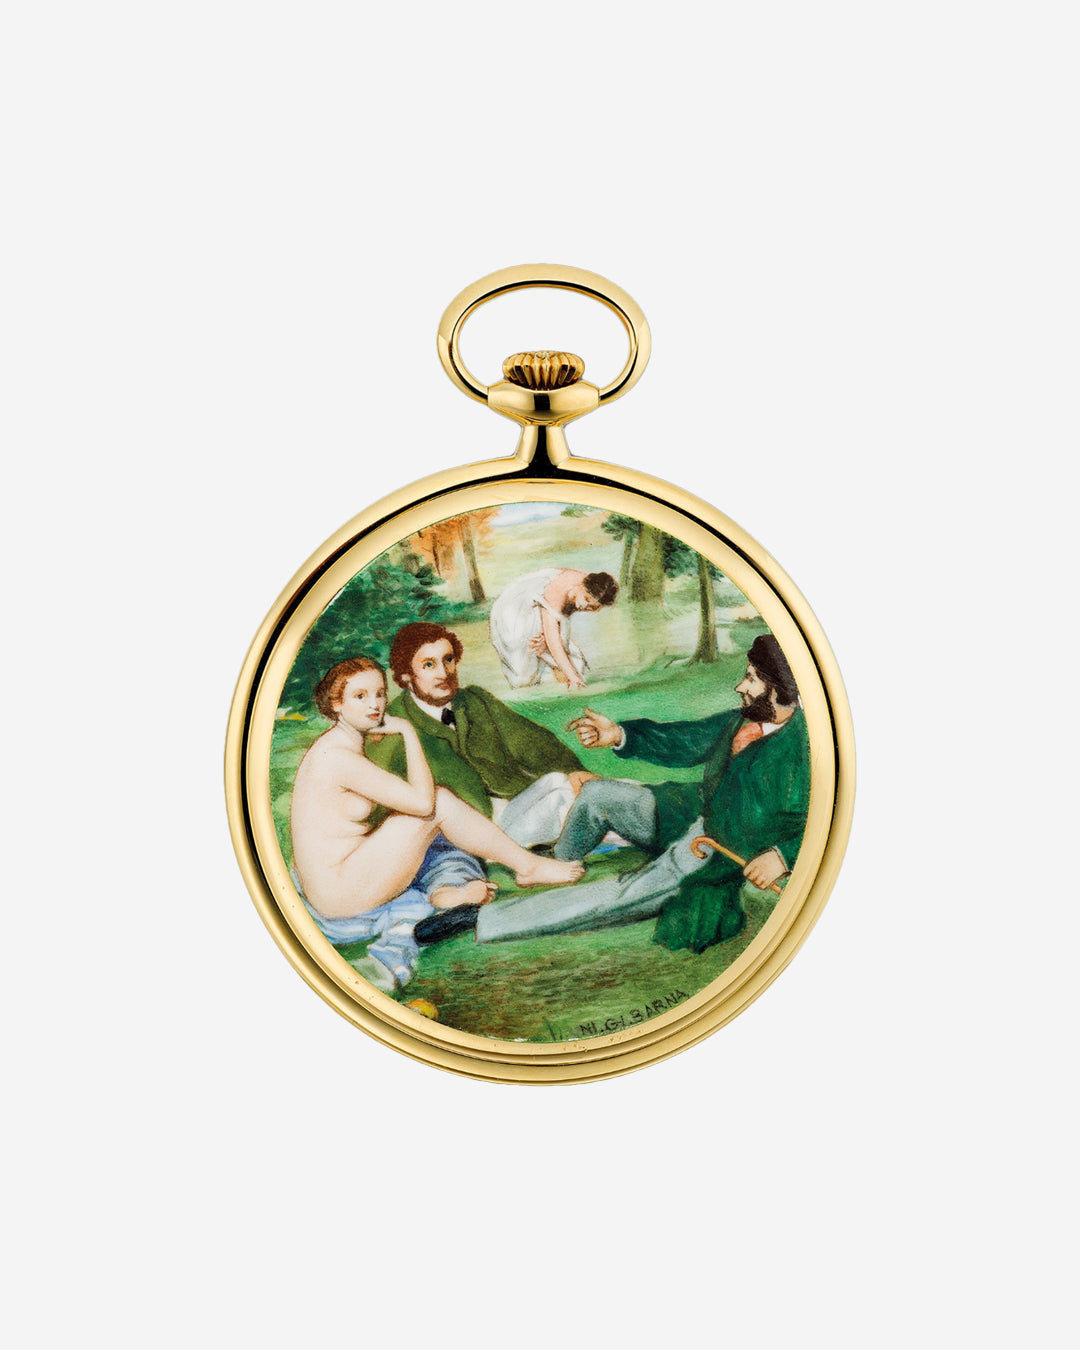 Audemars Piguet pocket watch with enamel miniature painting by Ni. Gi. Barnain The Art of Enamel Dials for A Collected Man London